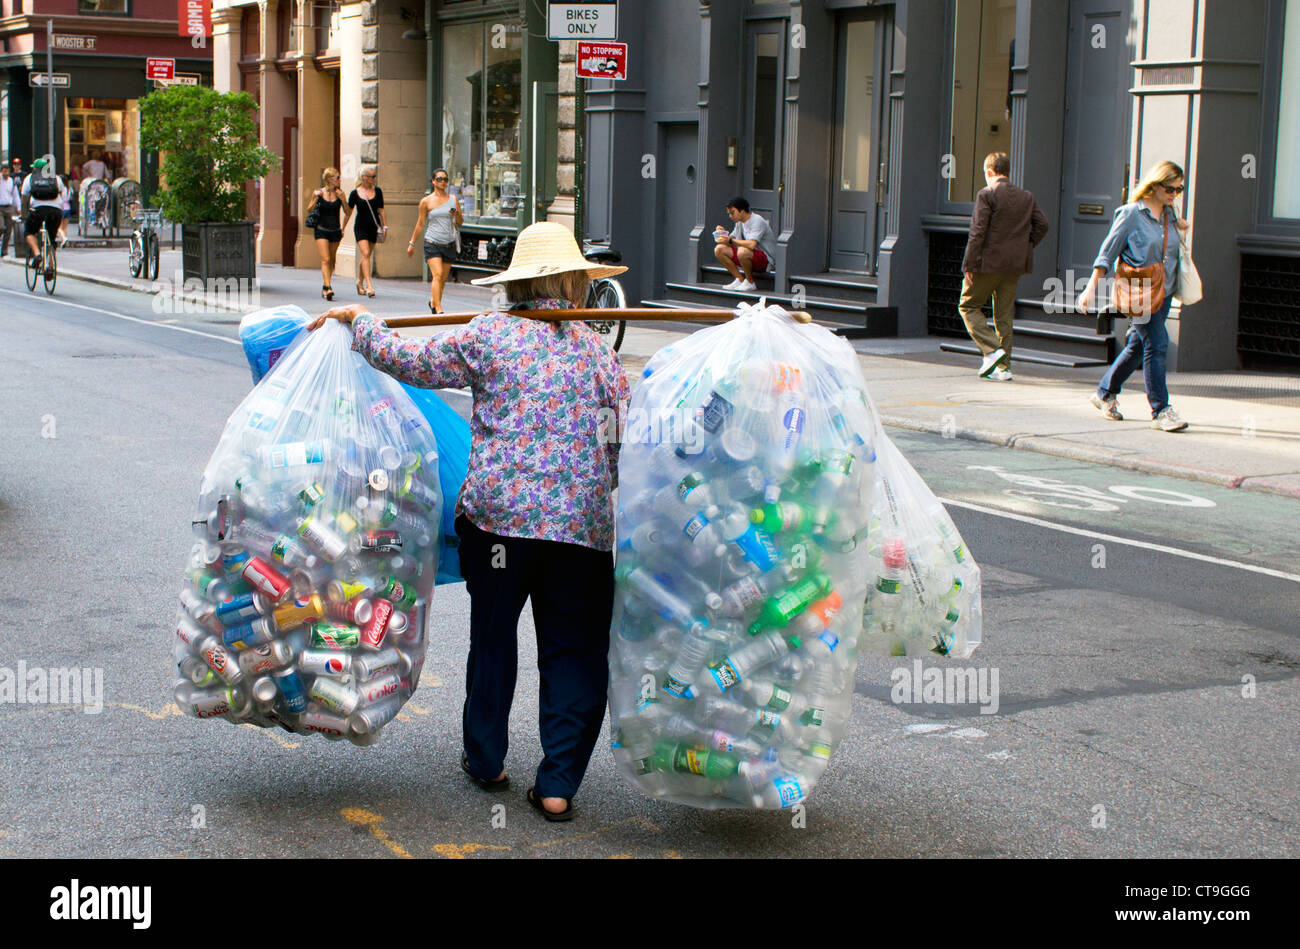 Elderly Asian woman collecting cans and bottles for the deposit to recycle in New York City - Stock Image